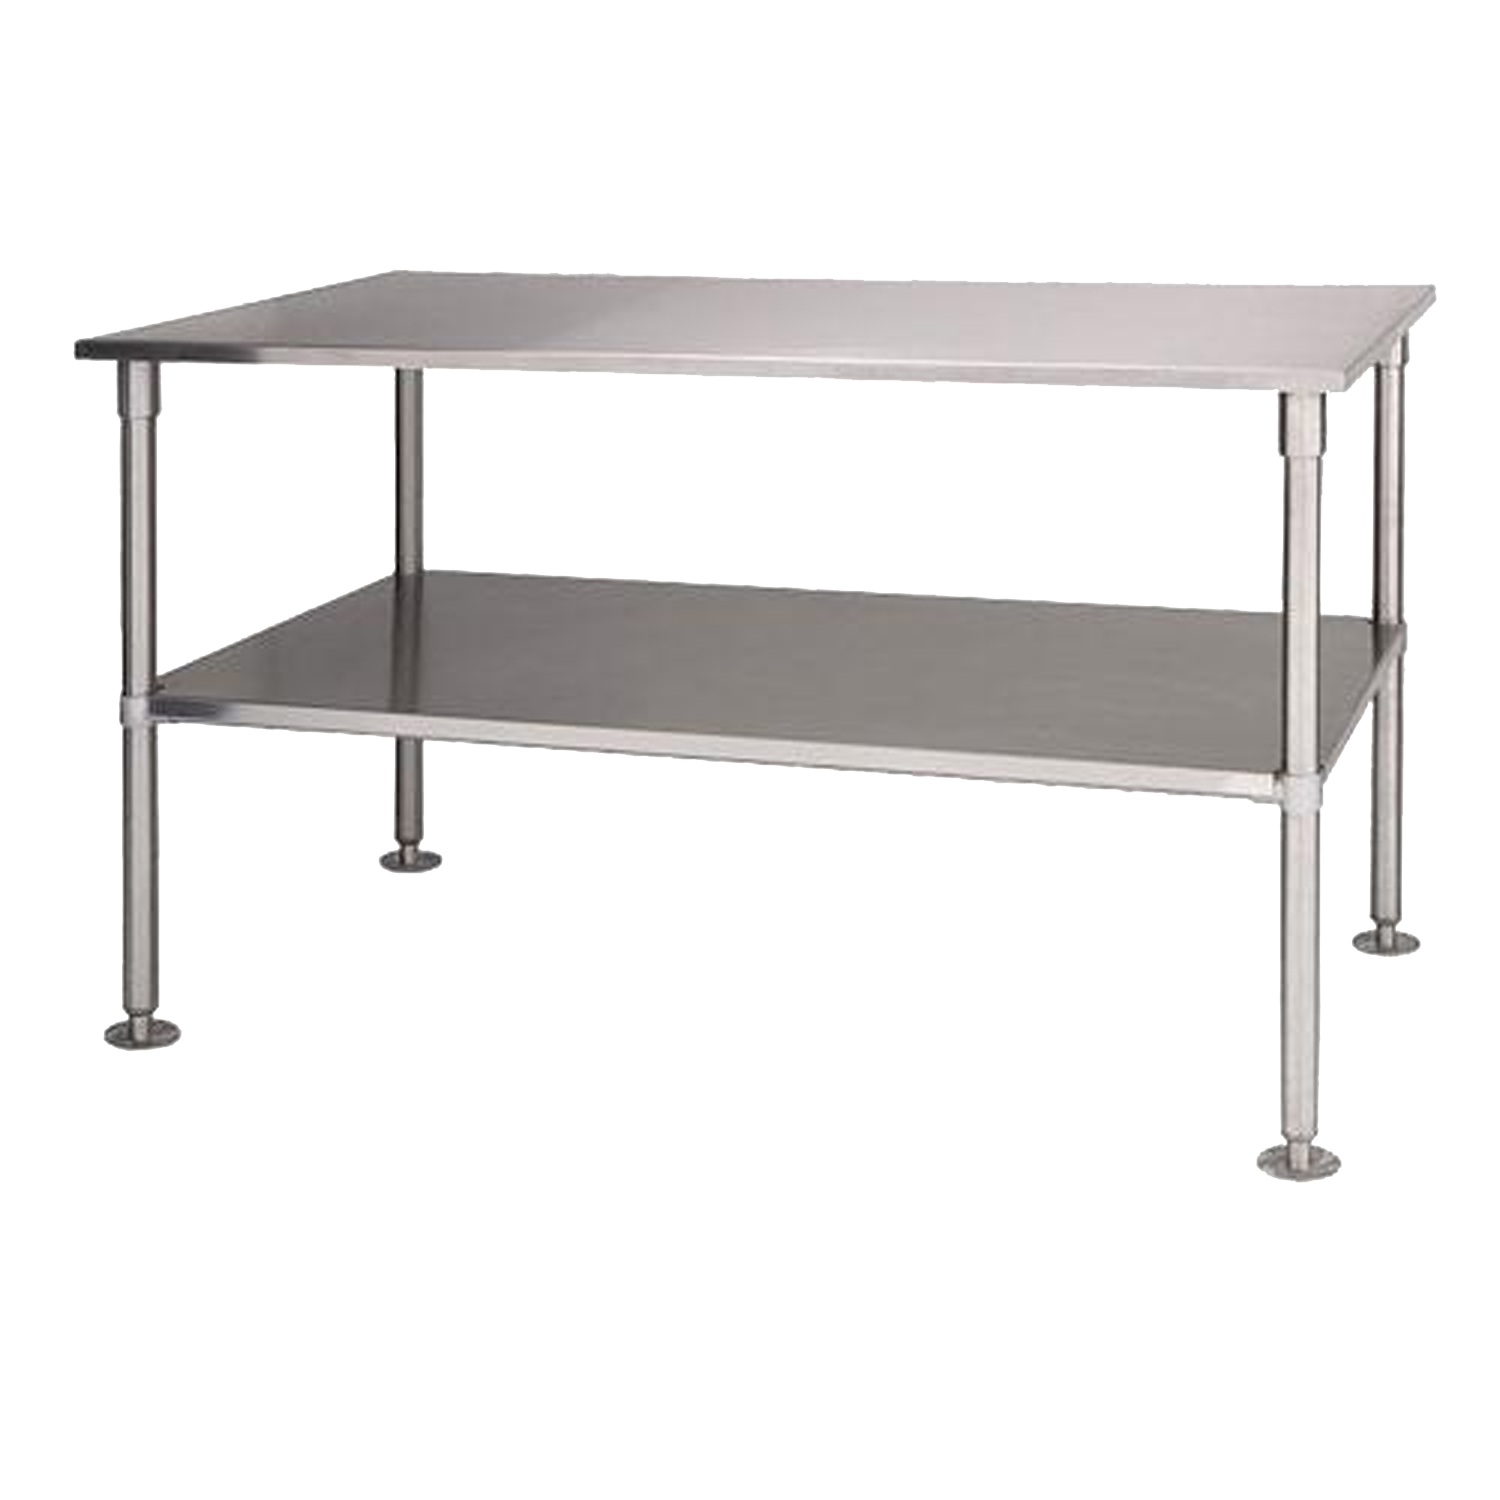 Avante Stainless Steel Work Table